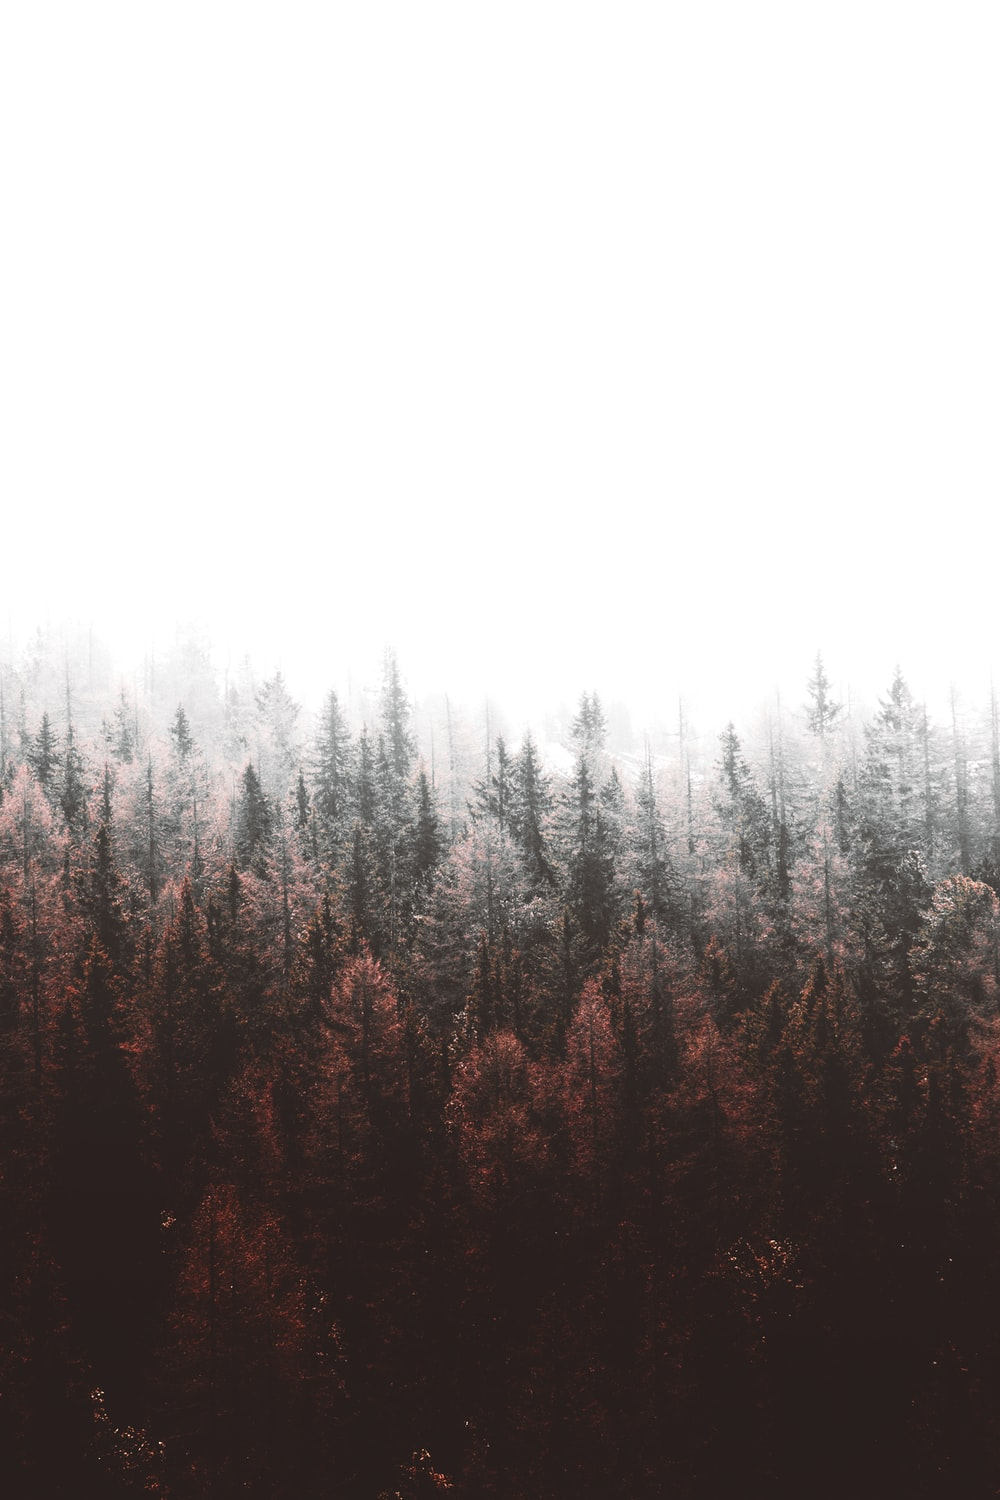 September pictures download free images on unsplash - Pine tree wallpaper iphone ...